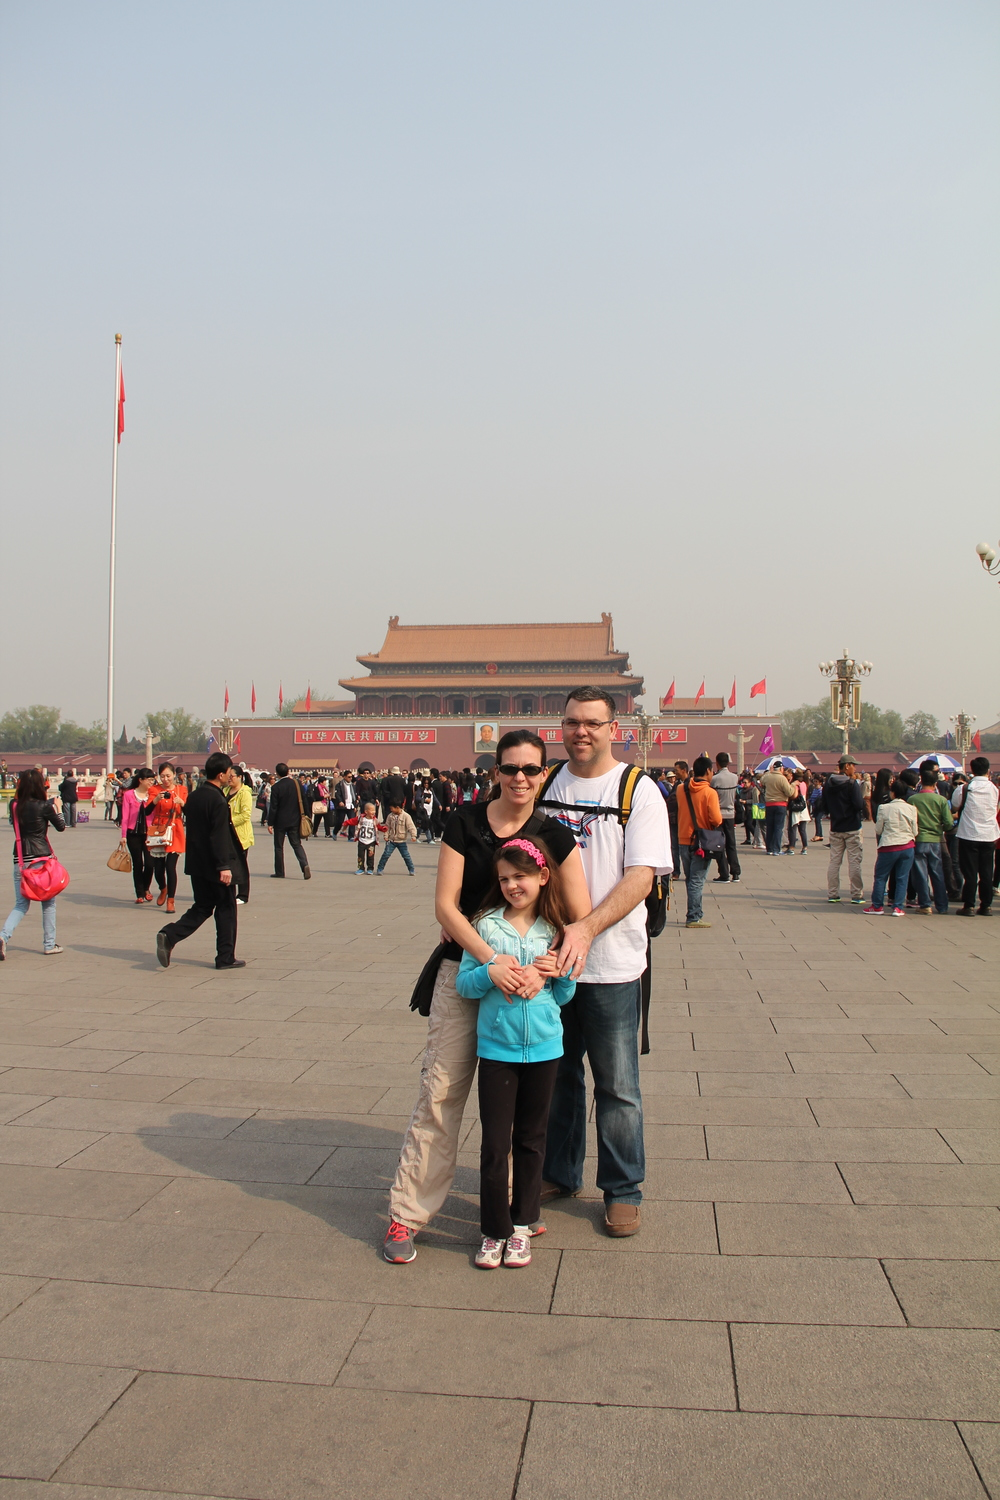 In Tiananment Square with half a million other people!